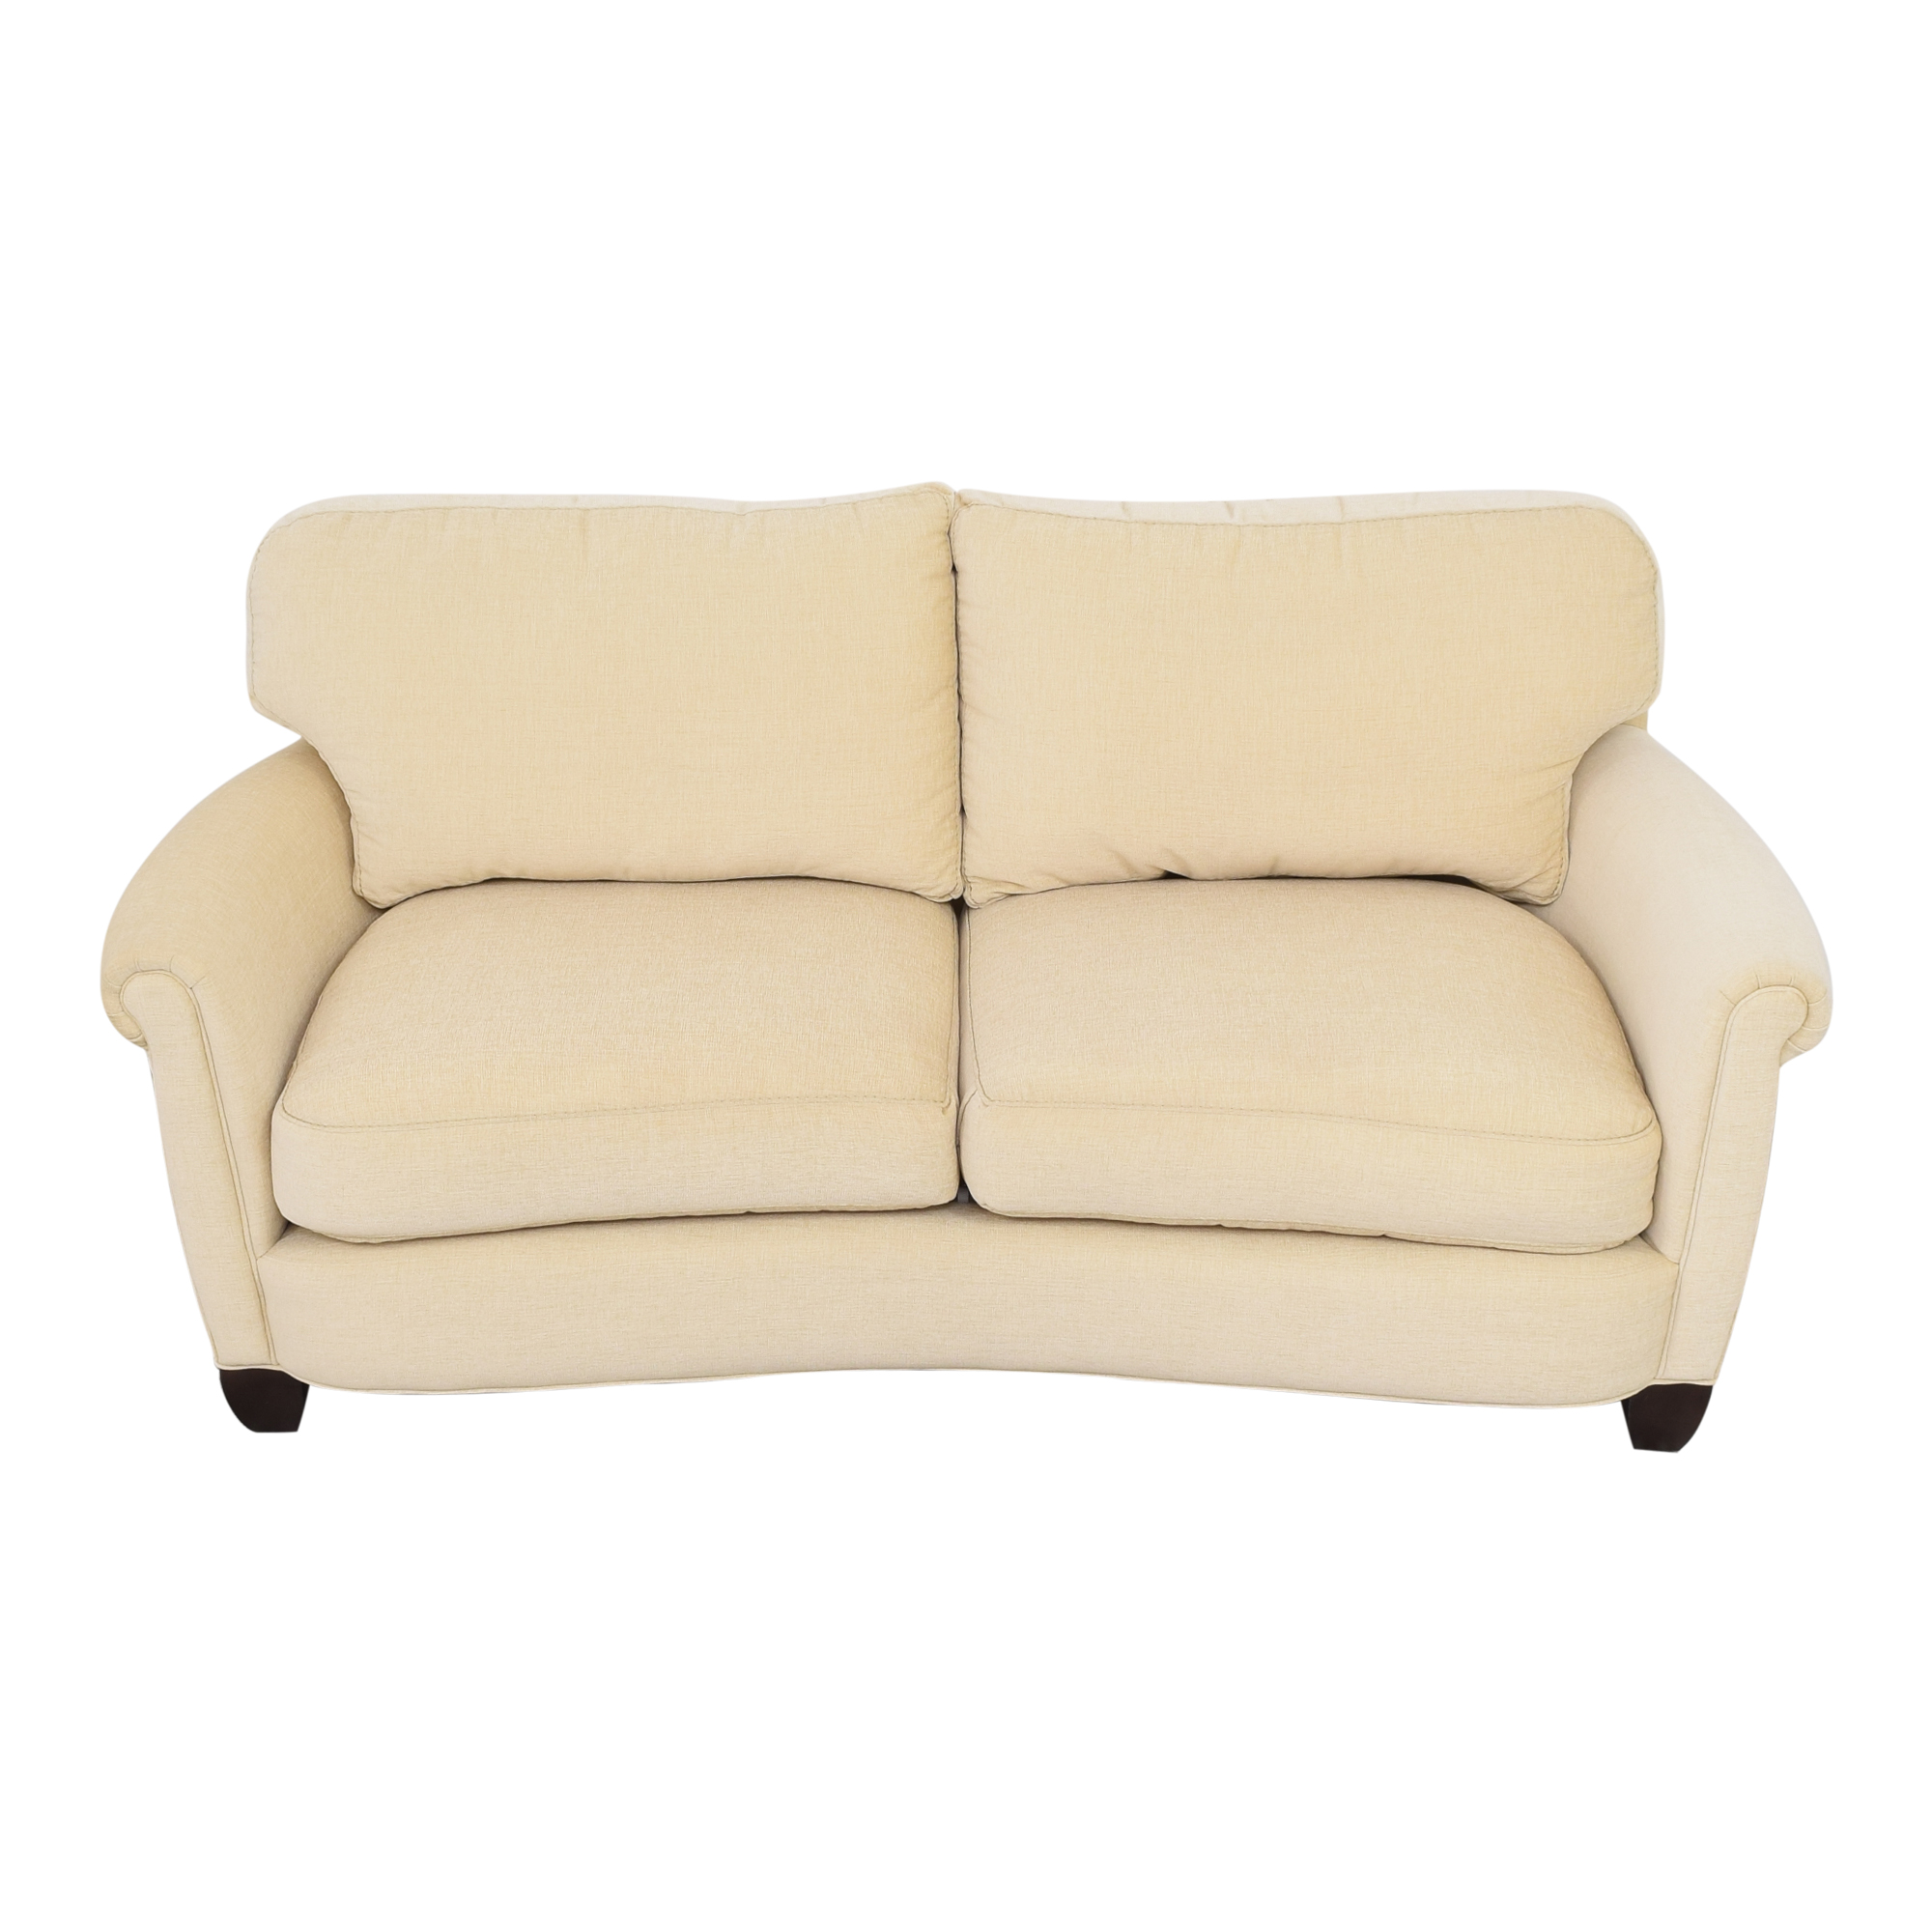 Country Willow Country Willow Apartment Sofa coupon